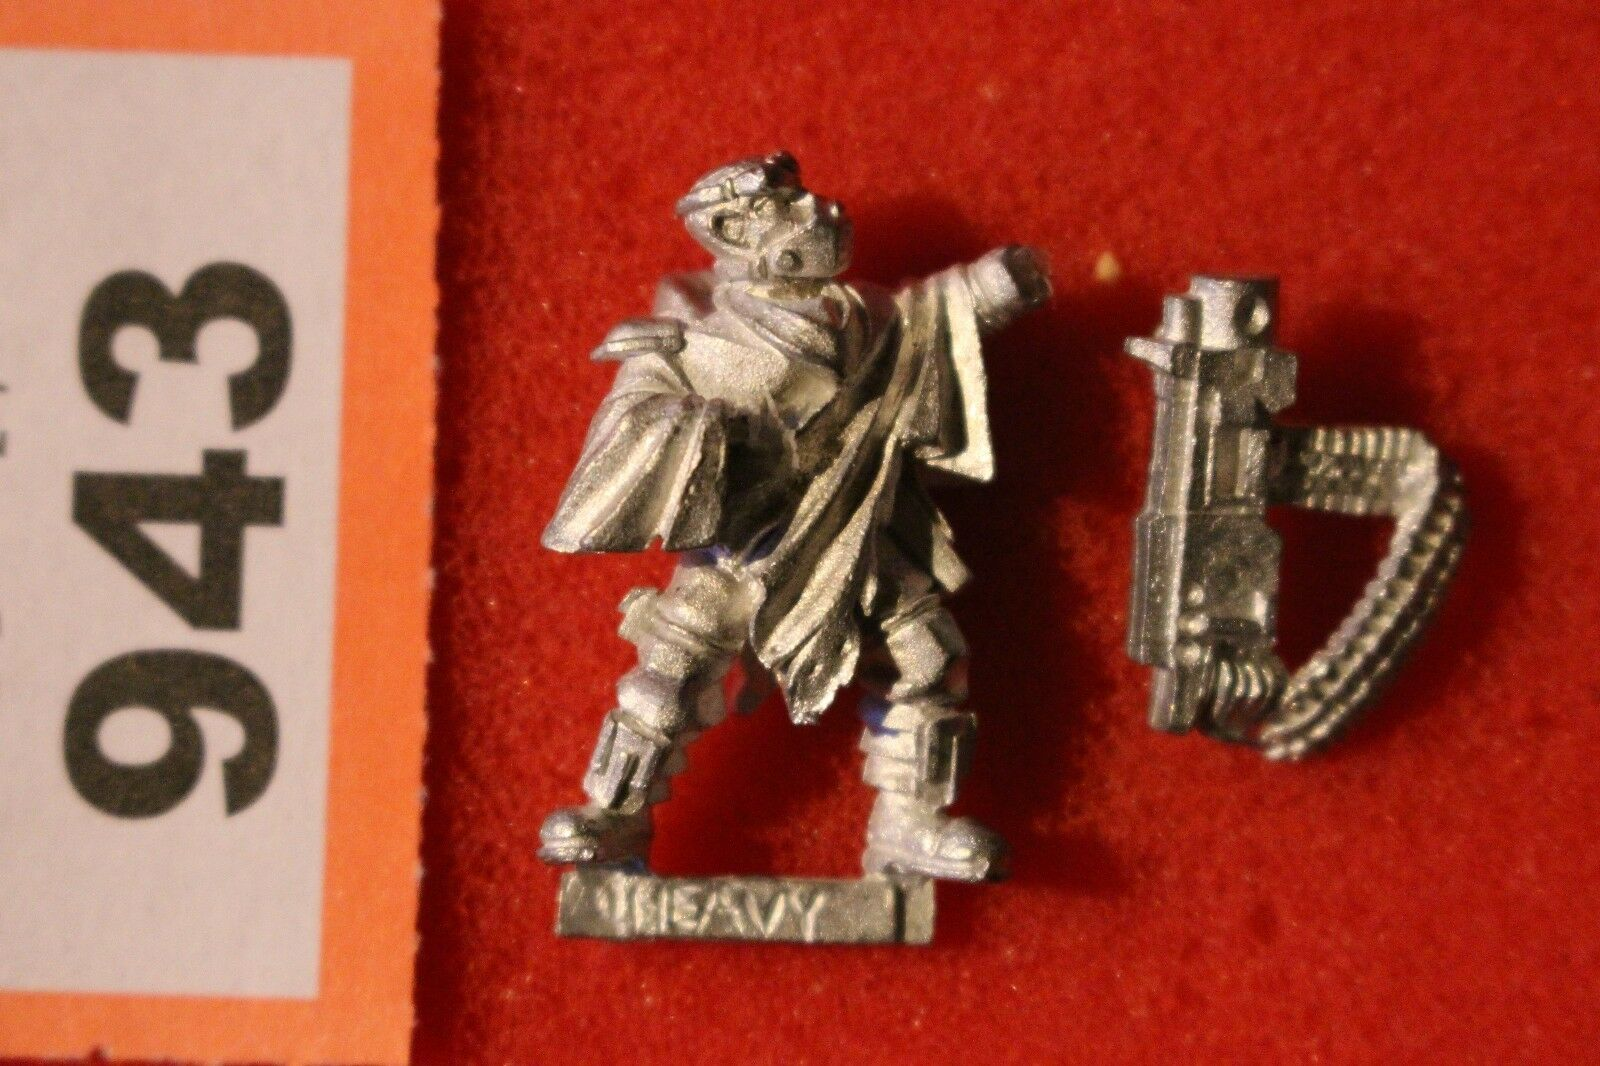 Games Workshop Necromunda Fanatic Ash Wastes Heavy Weapon New Metal Figure A1